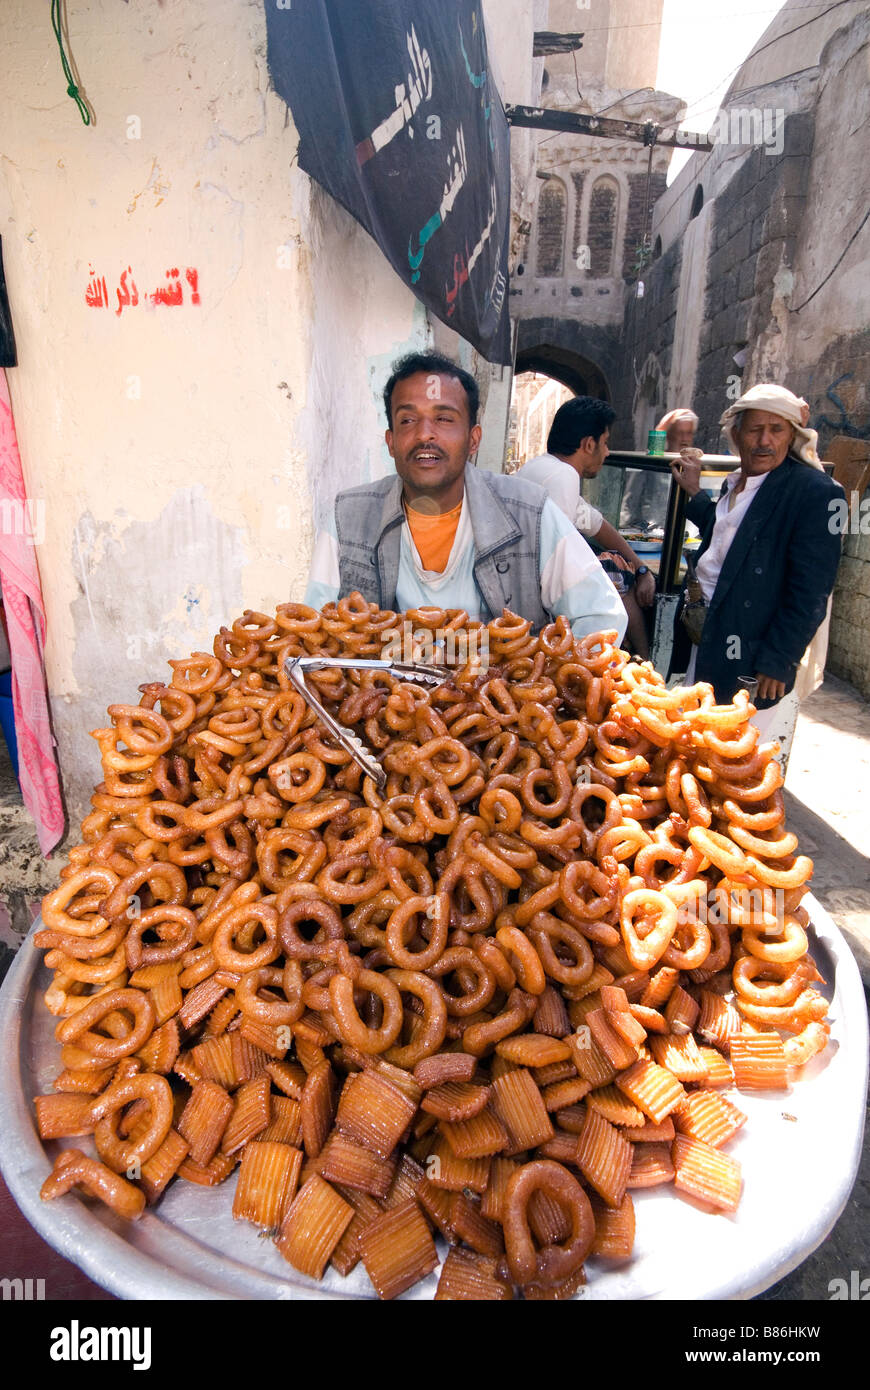 Market seller in Sanaa Yemen - Stock Image